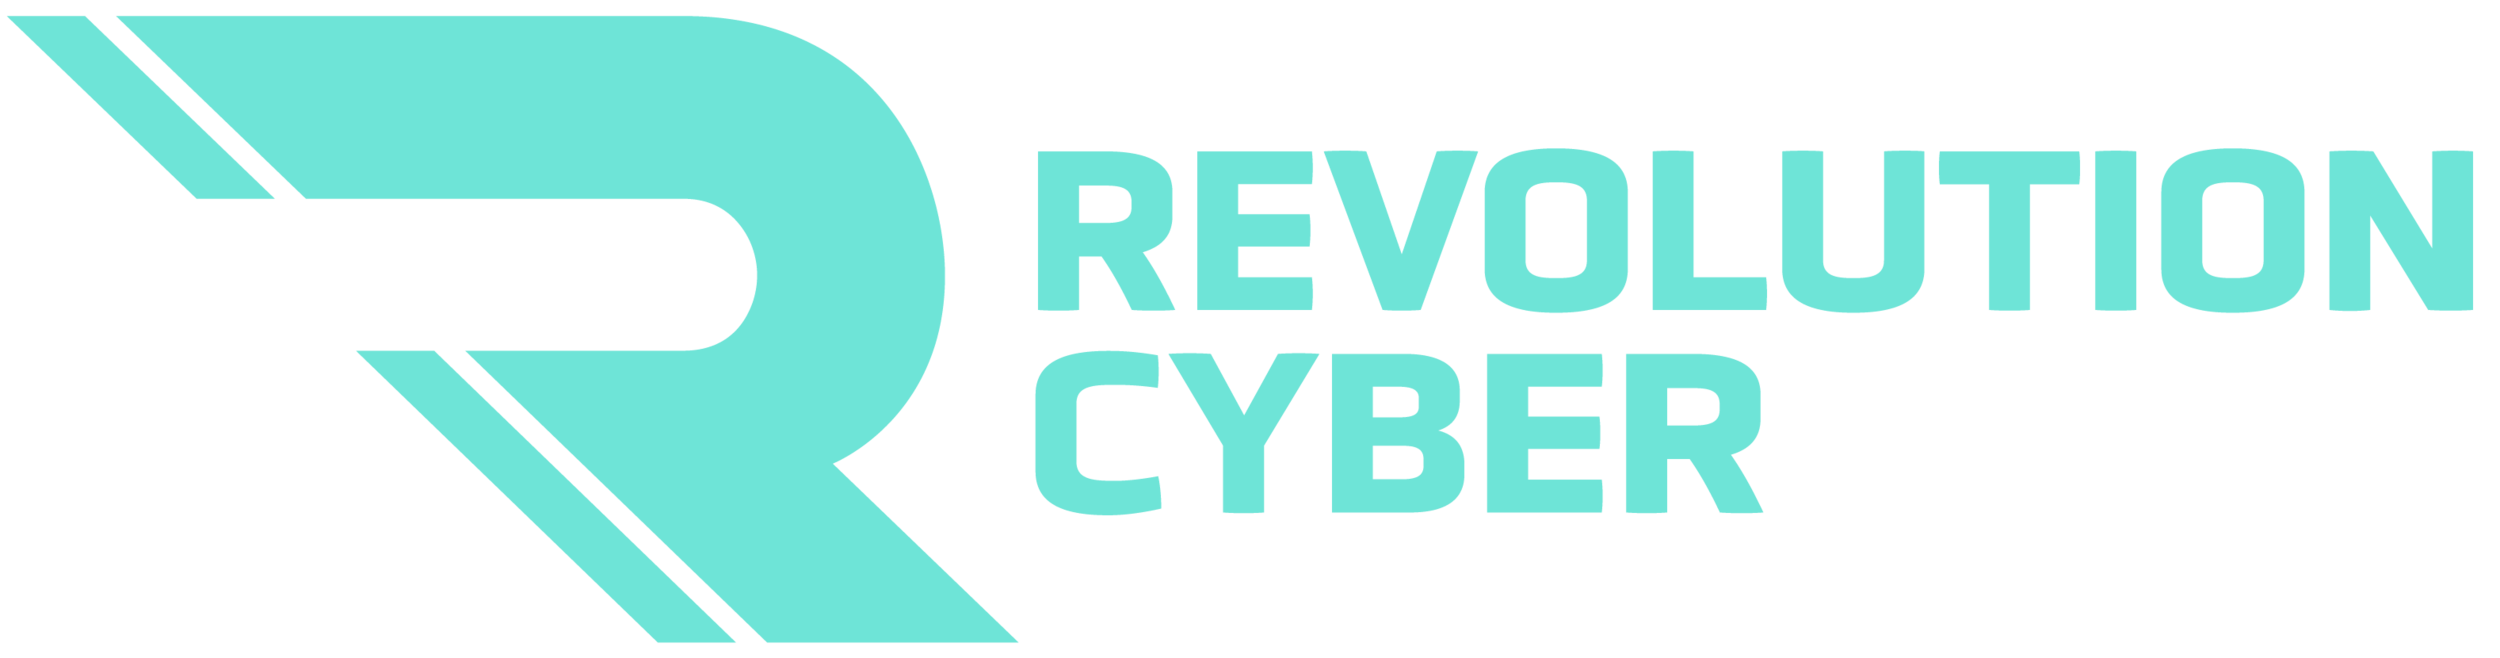 revcyber-logo-main-teal-horz.png